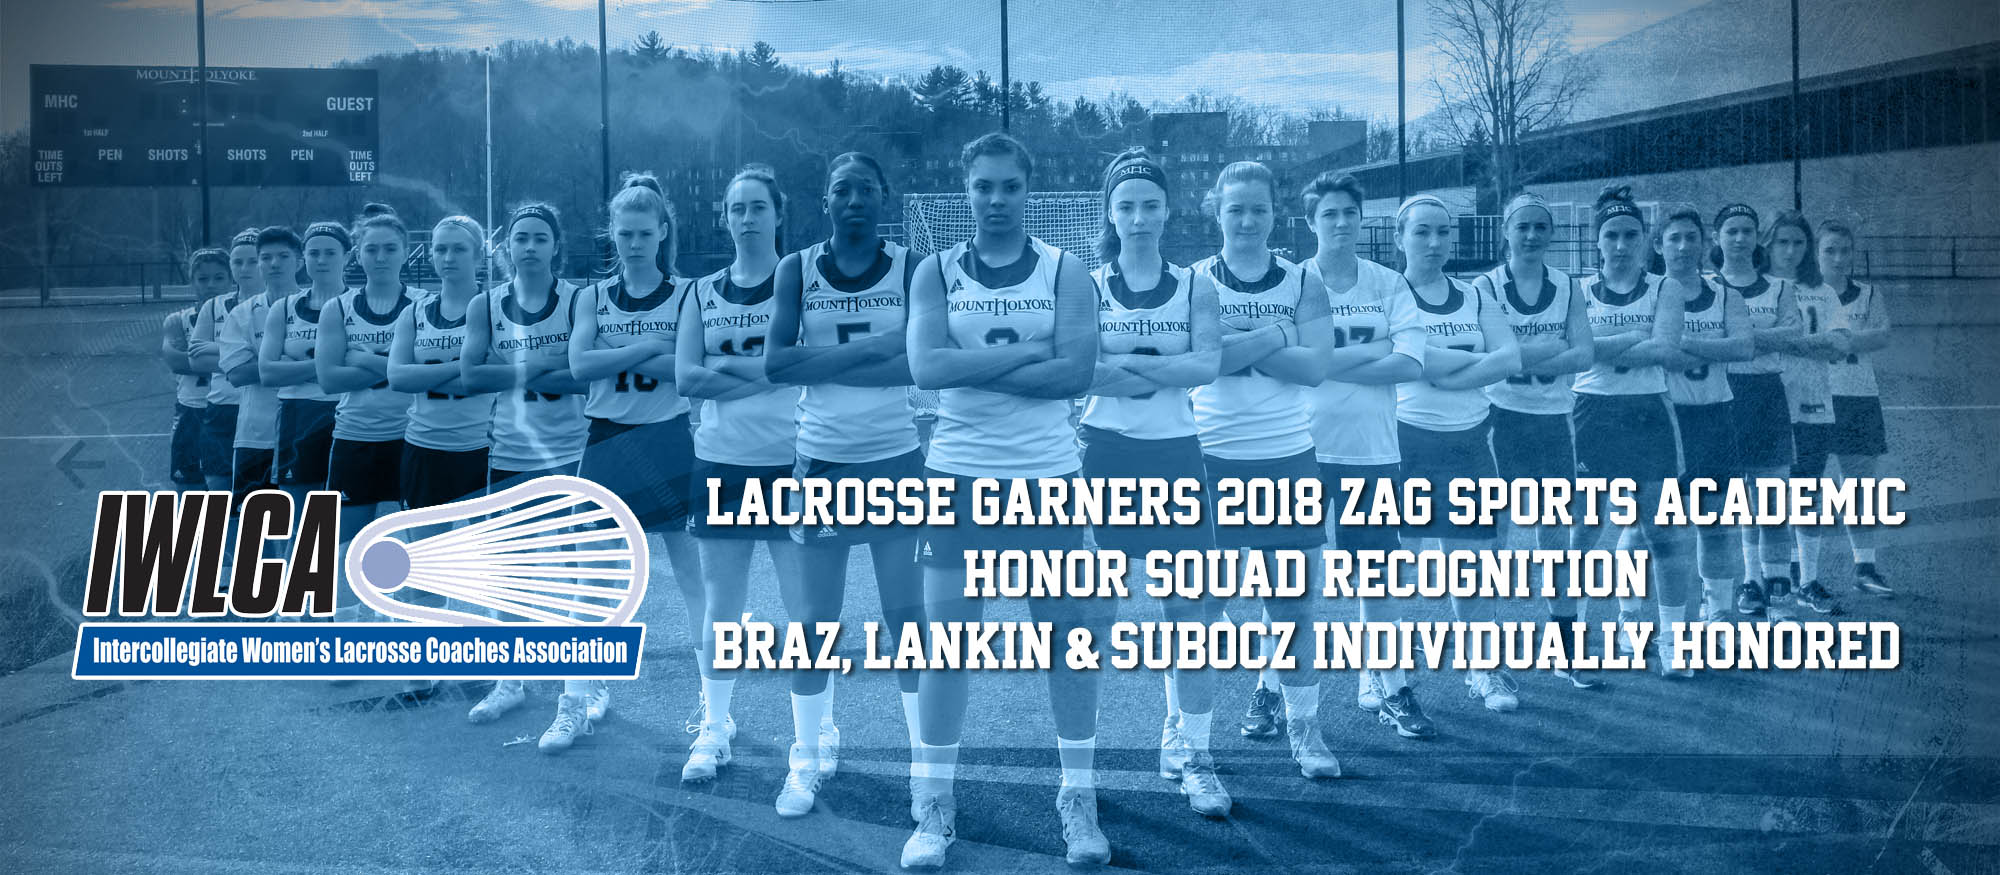 Photo of the 2018 Lyons Lacrosse Team, which was named a 2018 IWLCA/Zag Sports Academic Honor Squad for their work in the classroom.